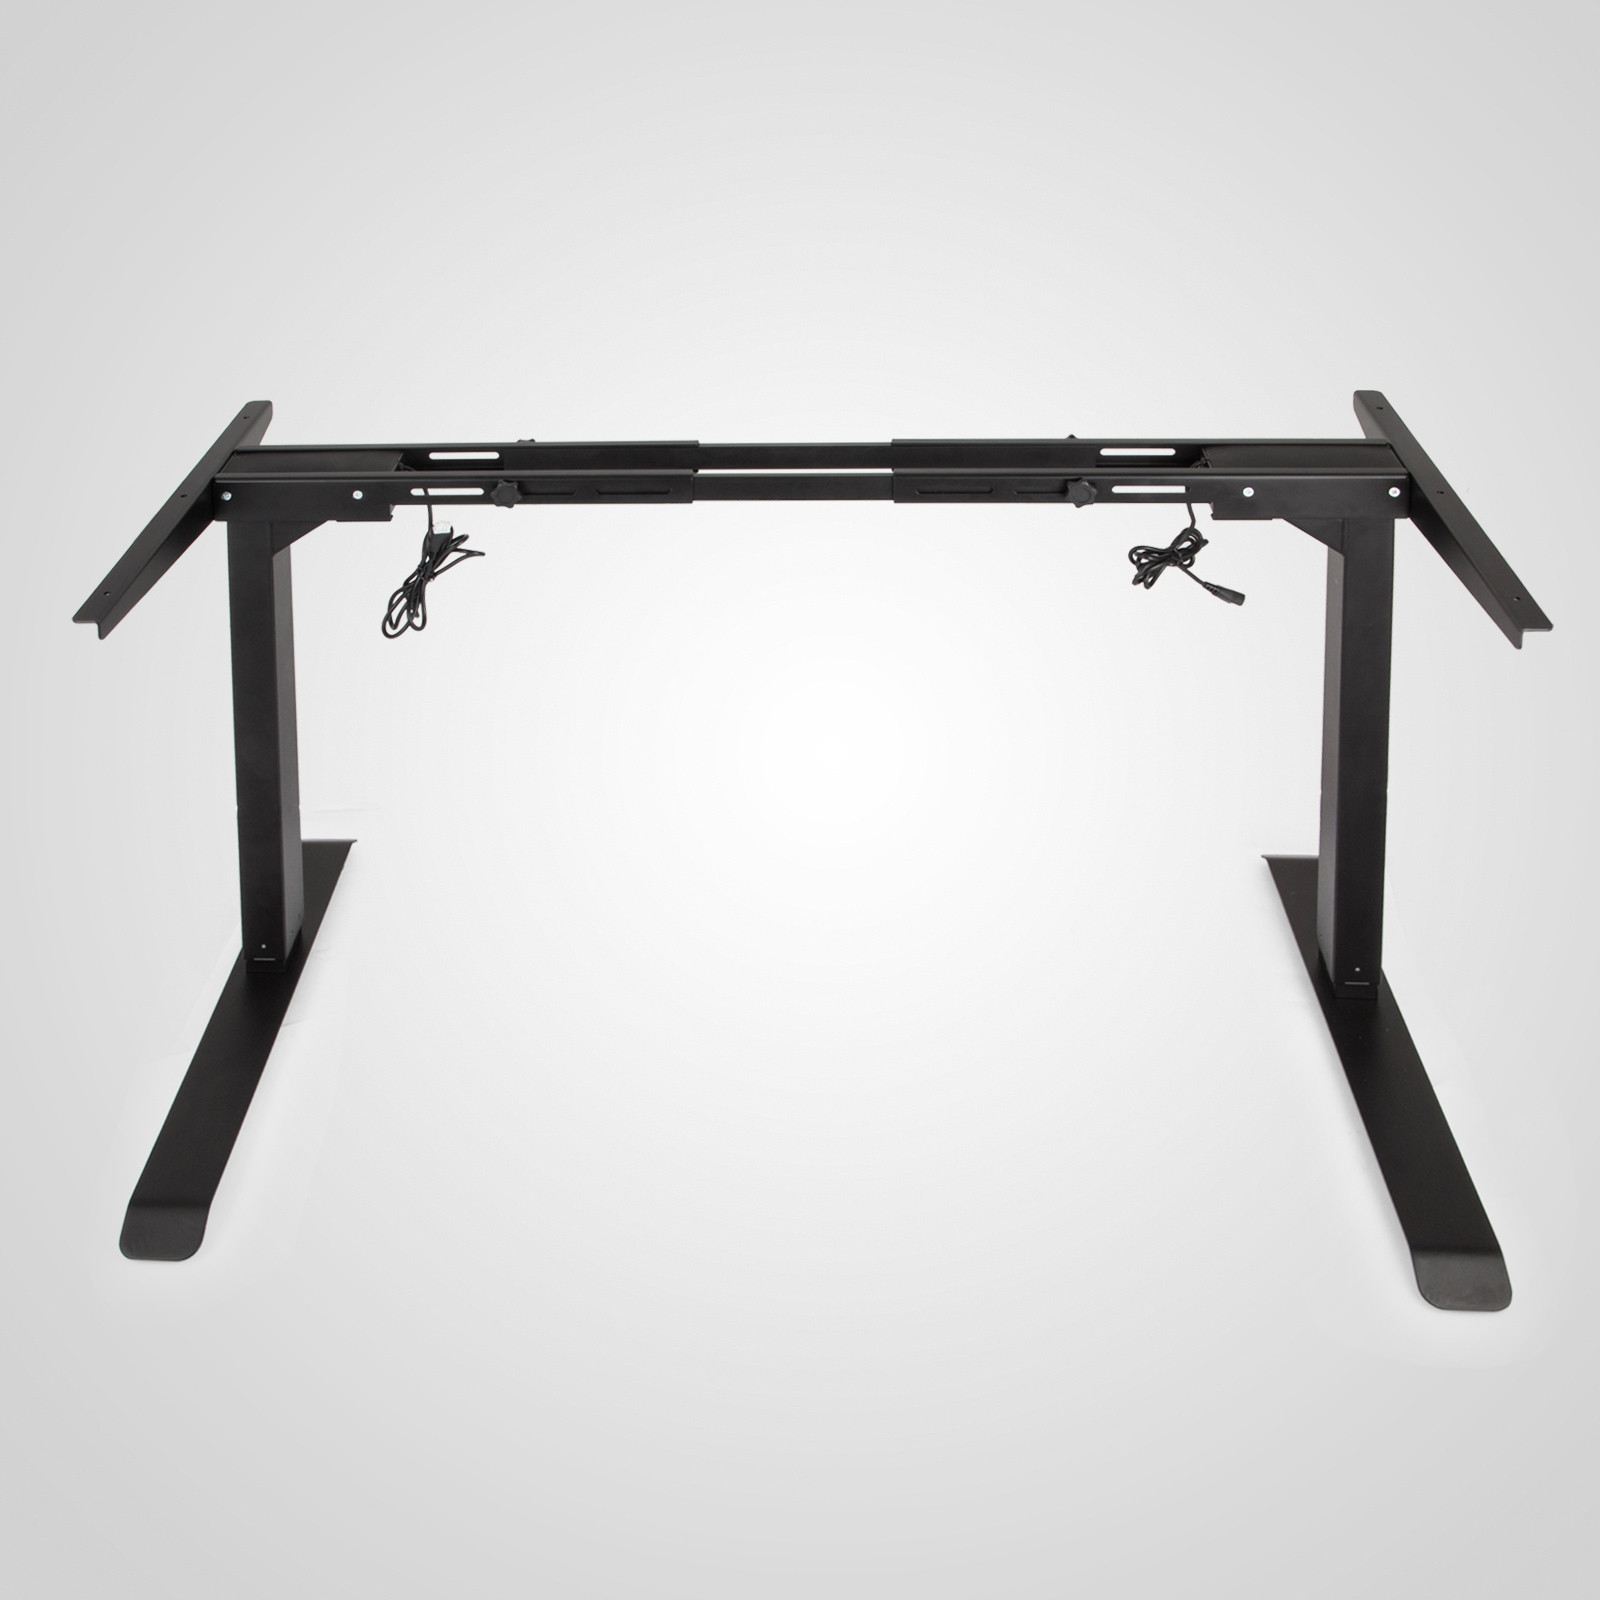 Electric-Sit-Stand-Standing-Desk-Frame-Dual-Motor-Stable-Heavy-Duty-Premium thumbnail 18